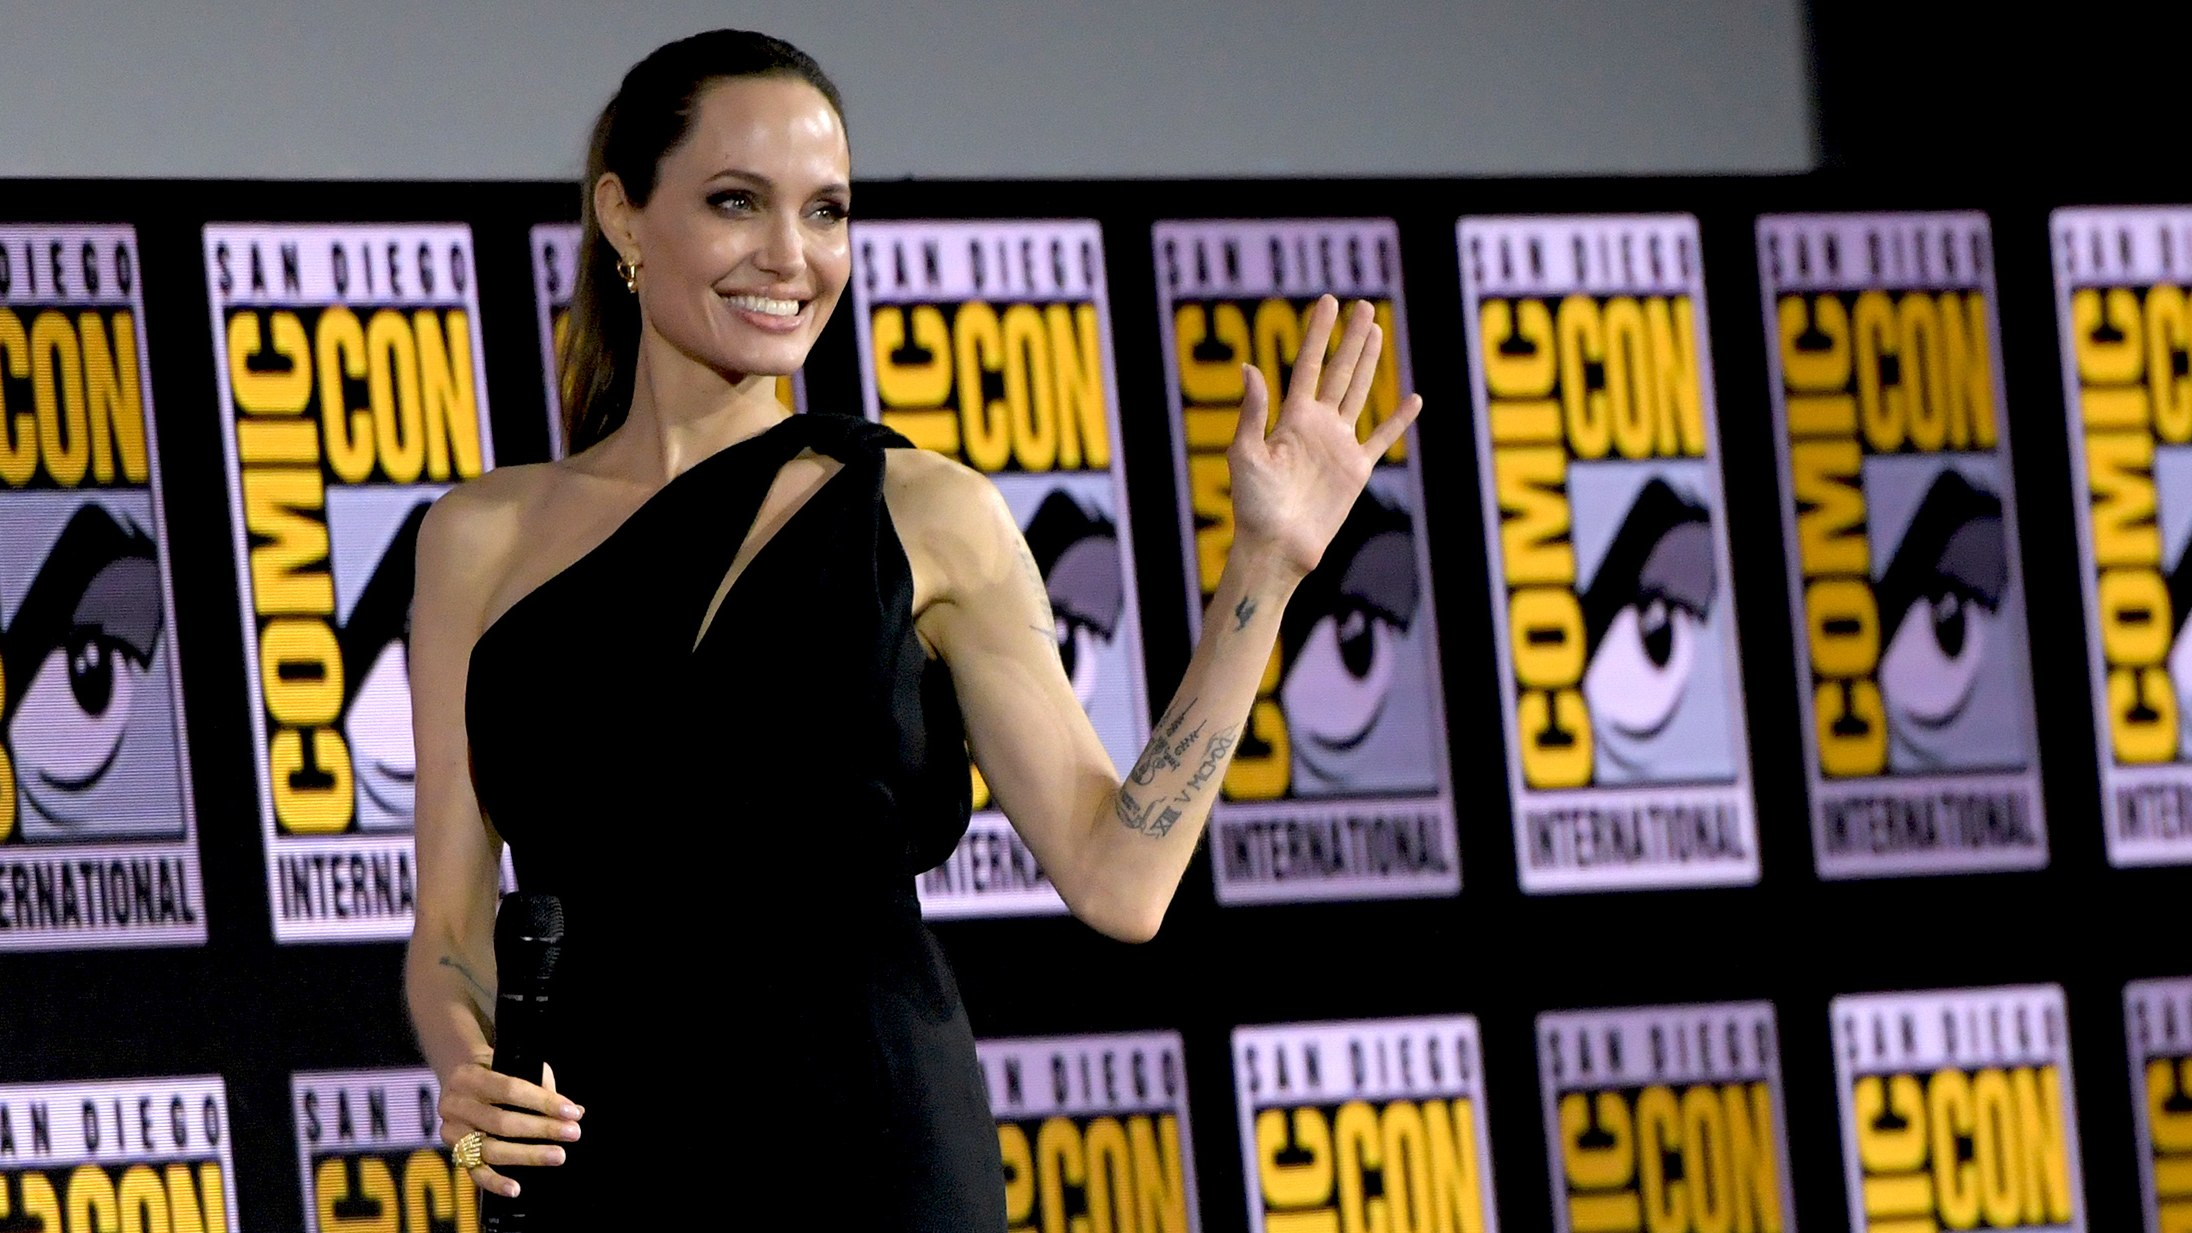 Angelina Jolie at San Diego Comic-con.Pic courtesy: Vogue